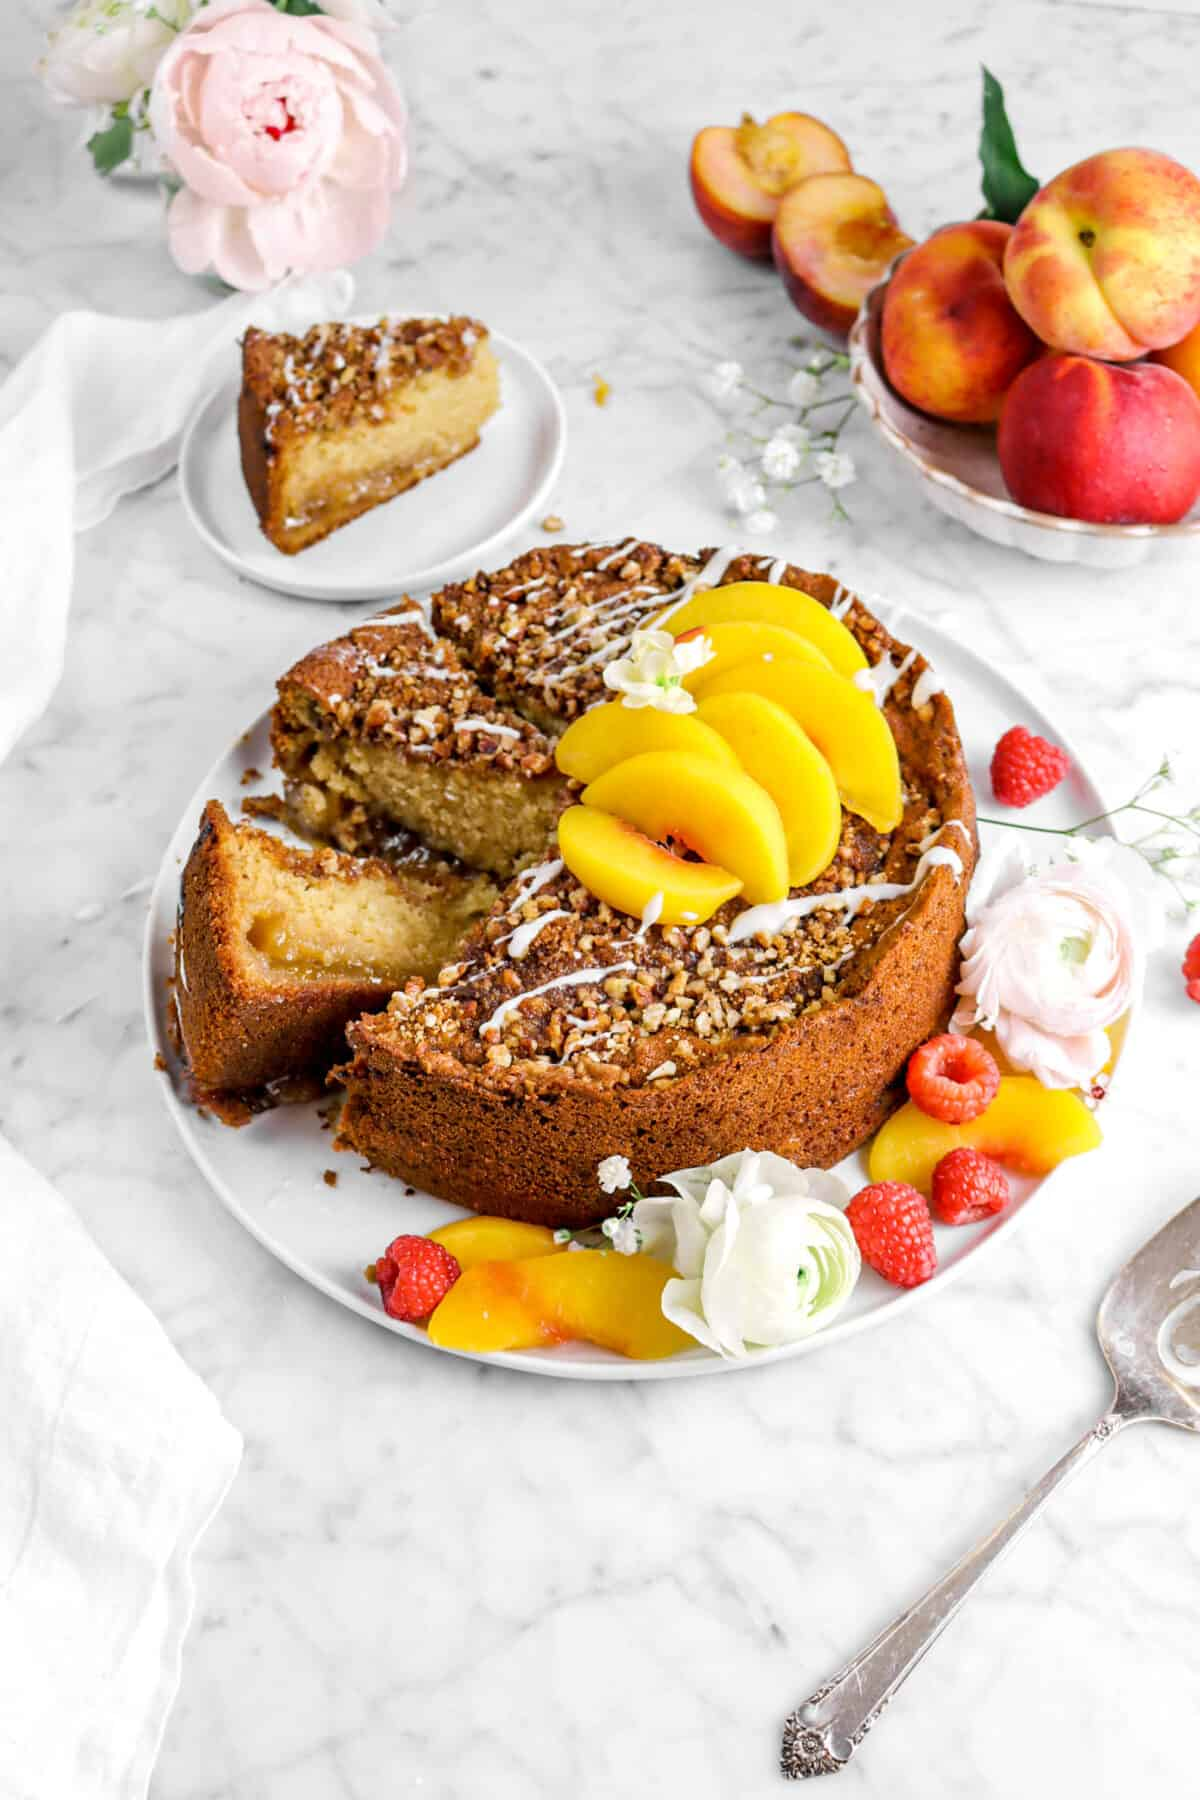 peach coffee cake on white plate with two slices laying beside cake, one behind on white plate, with fresh berries, peach slices, and flowers